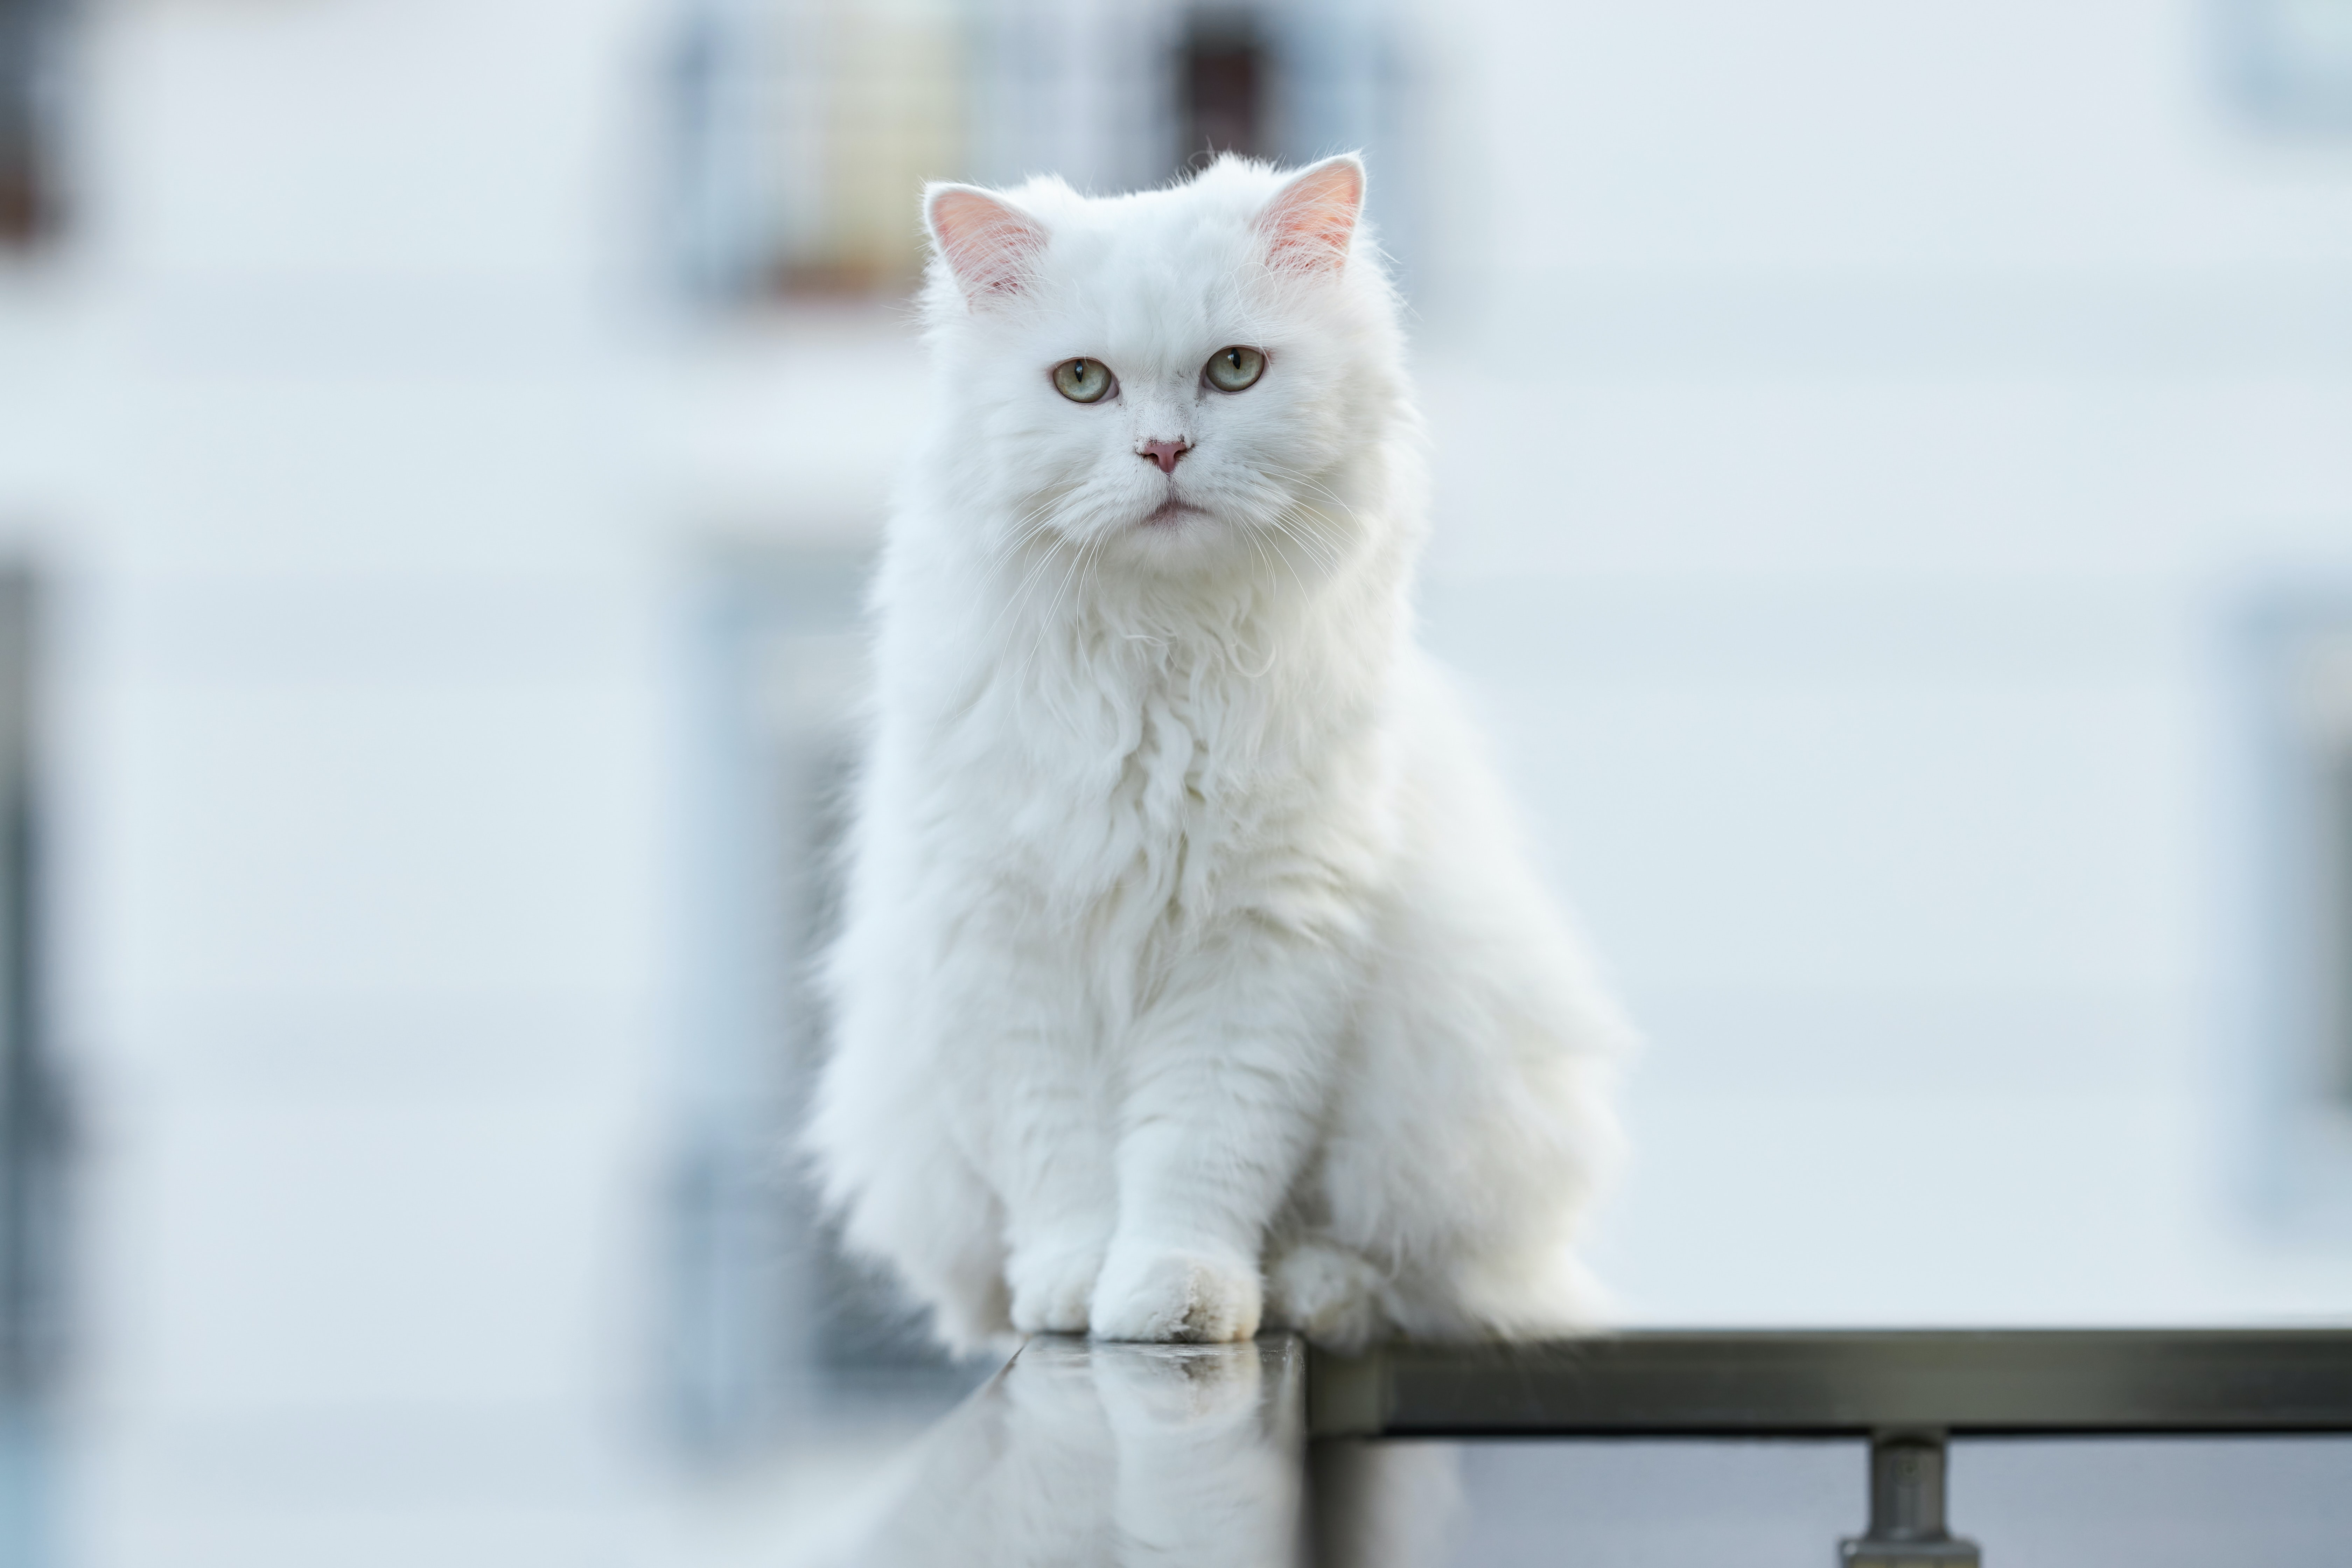 98324 download wallpaper Animals, Cat, Pet, Sight, Opinion, Fluffy screensavers and pictures for free